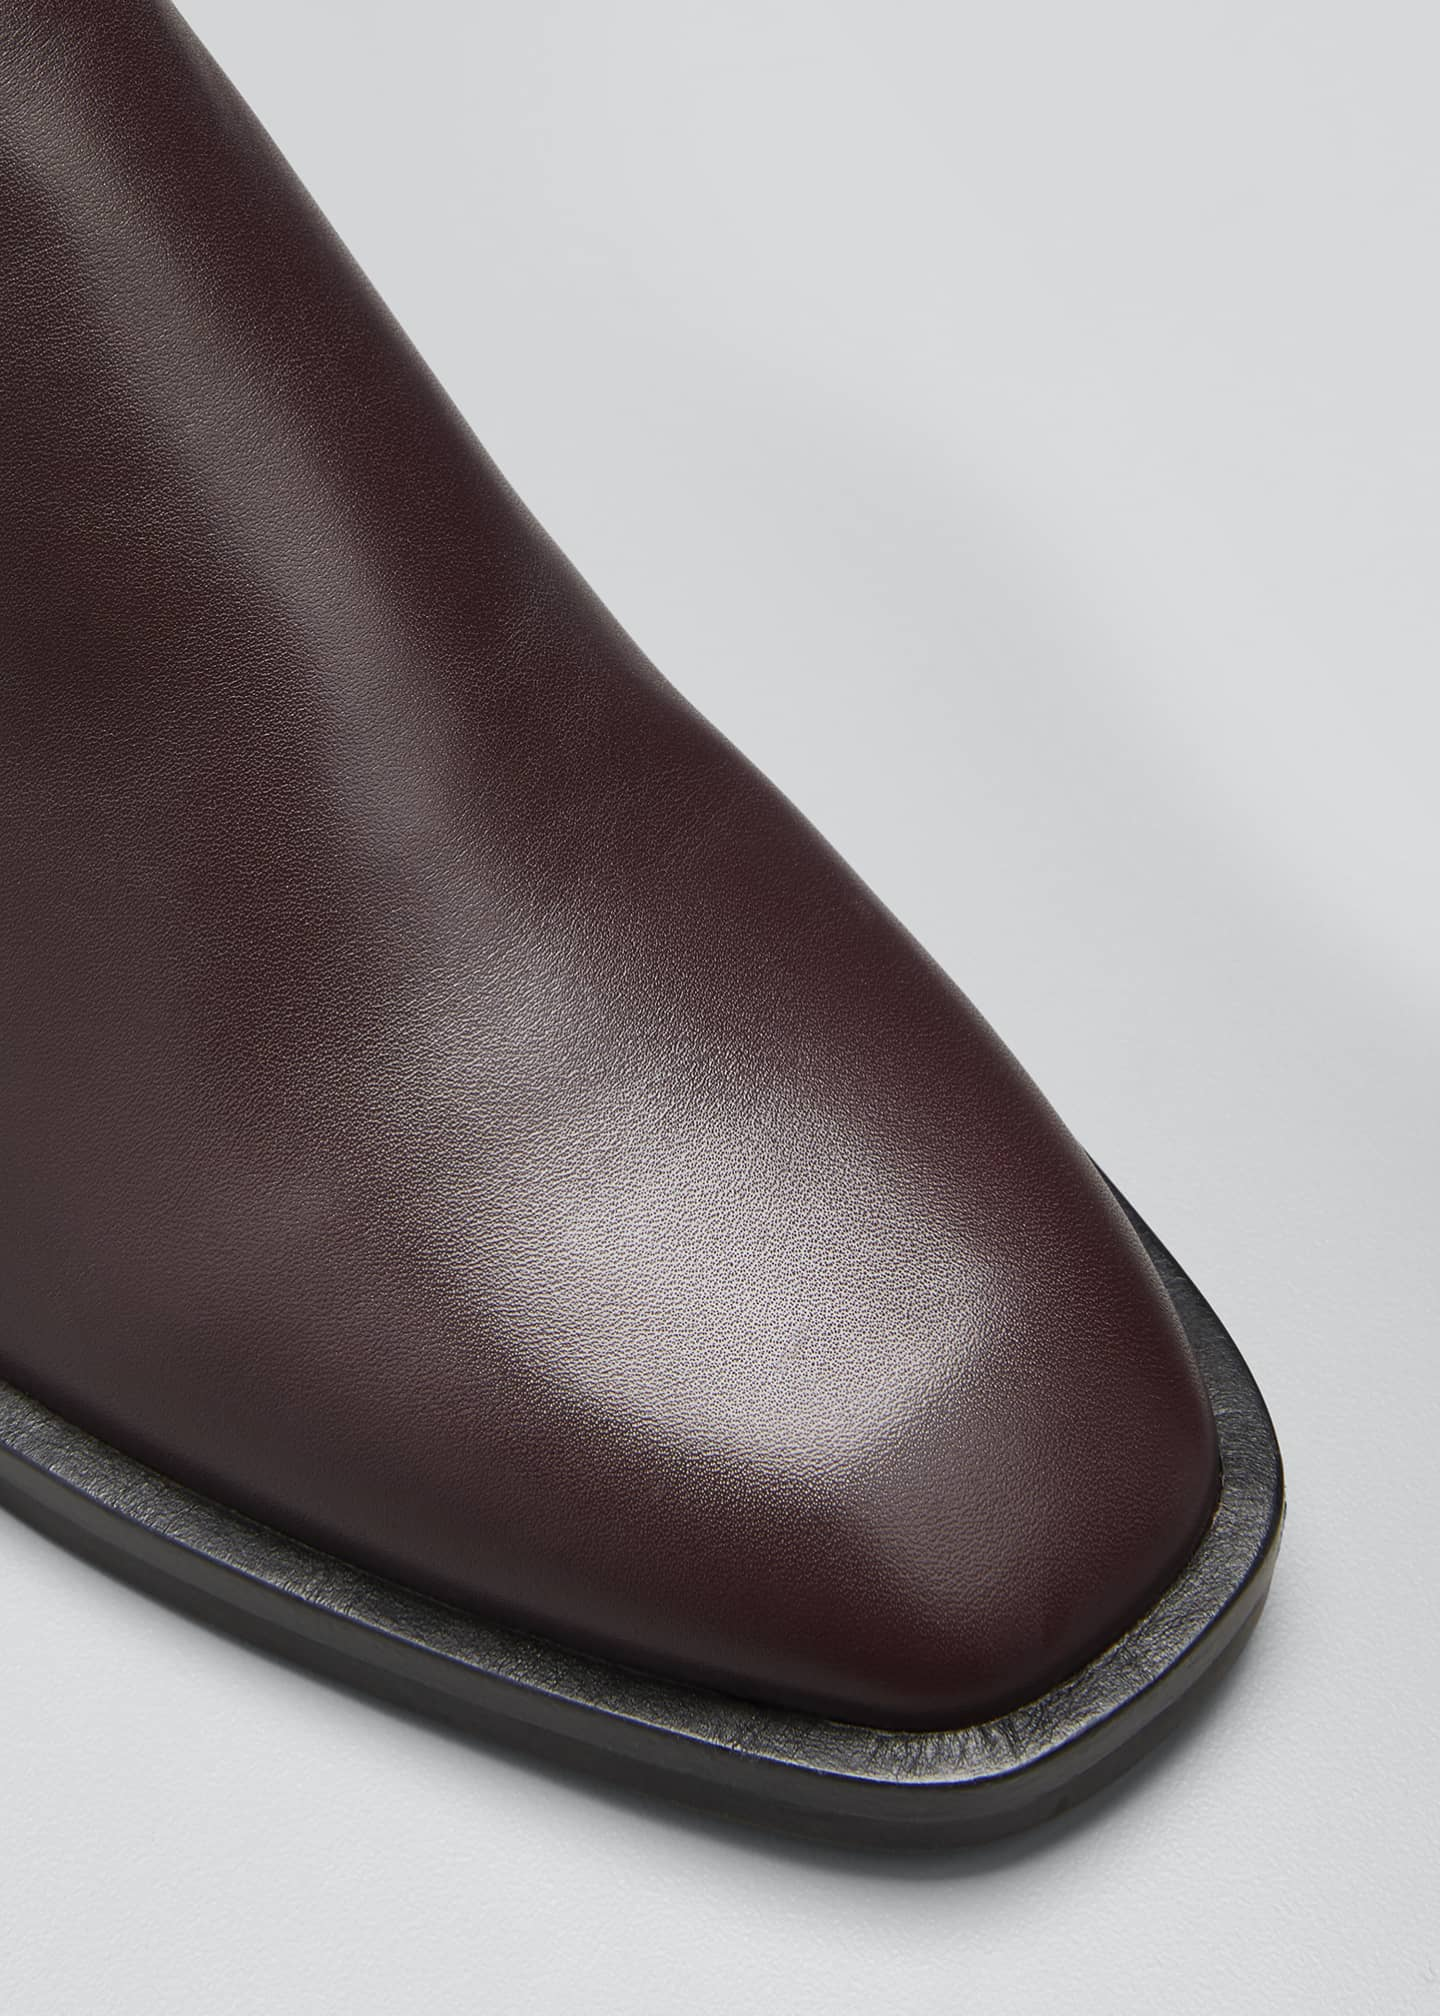 Image 3 of 3: Alexa Dual Zip Ankle Boots